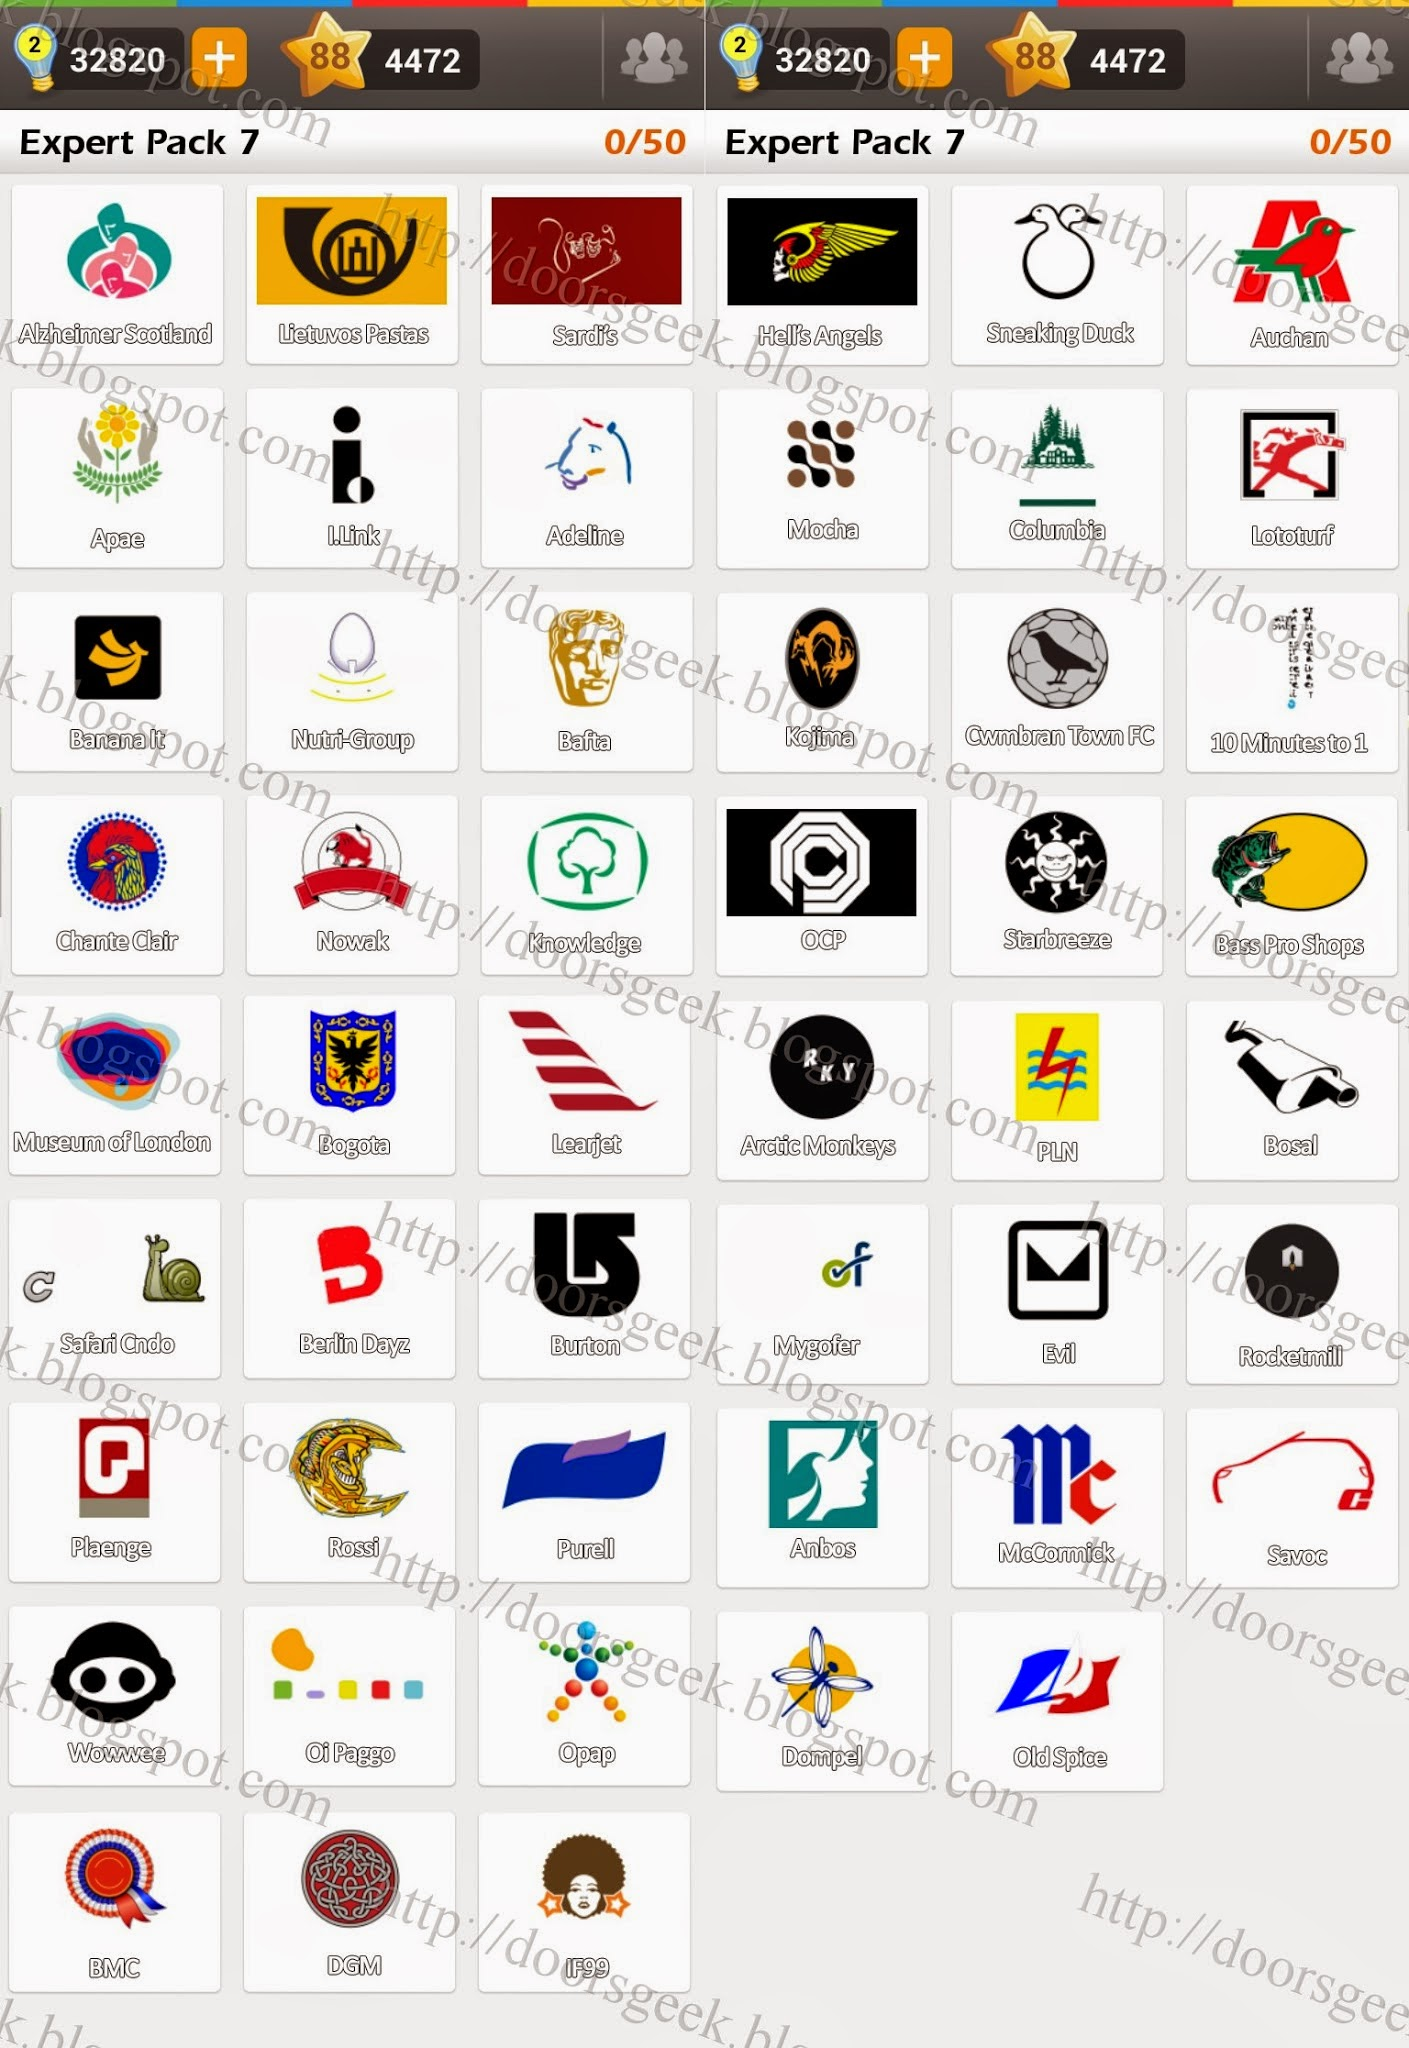 Logo game guess the brand bonus cars chainimage - Answers In Expert Pack 7 Are